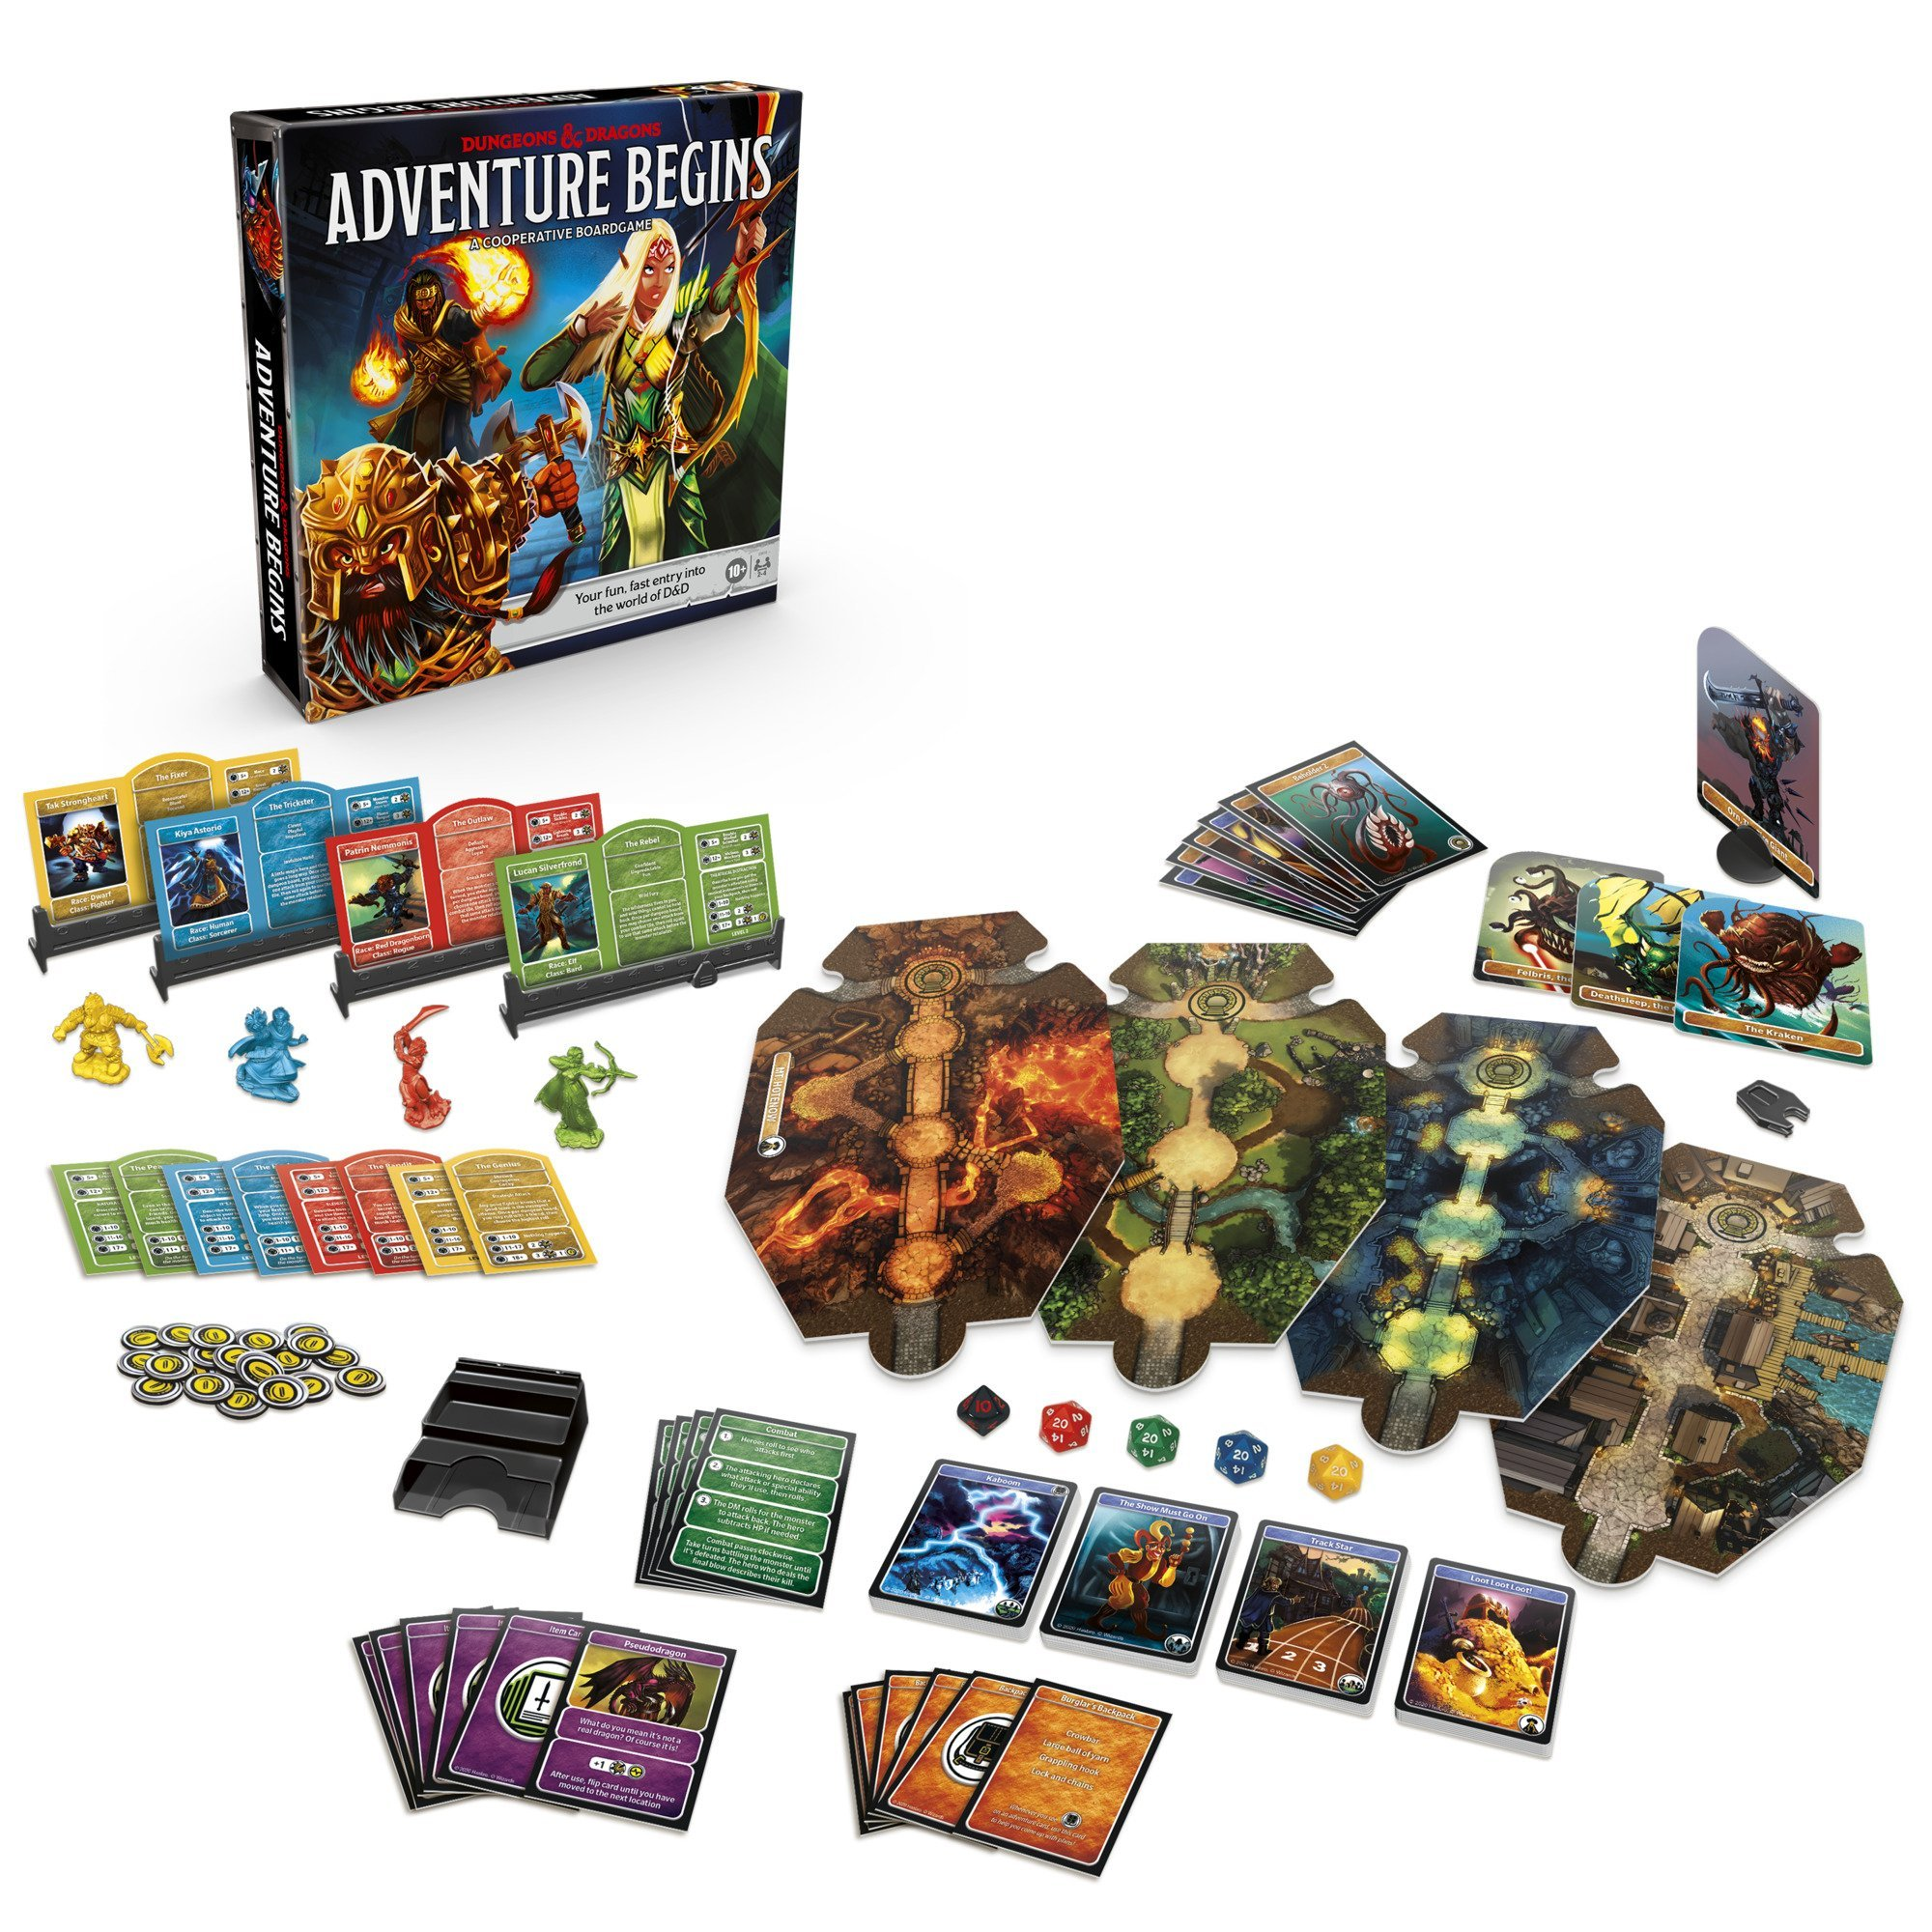 Dungeons & Dragons Adventure Begins board game is designed for newbies 14